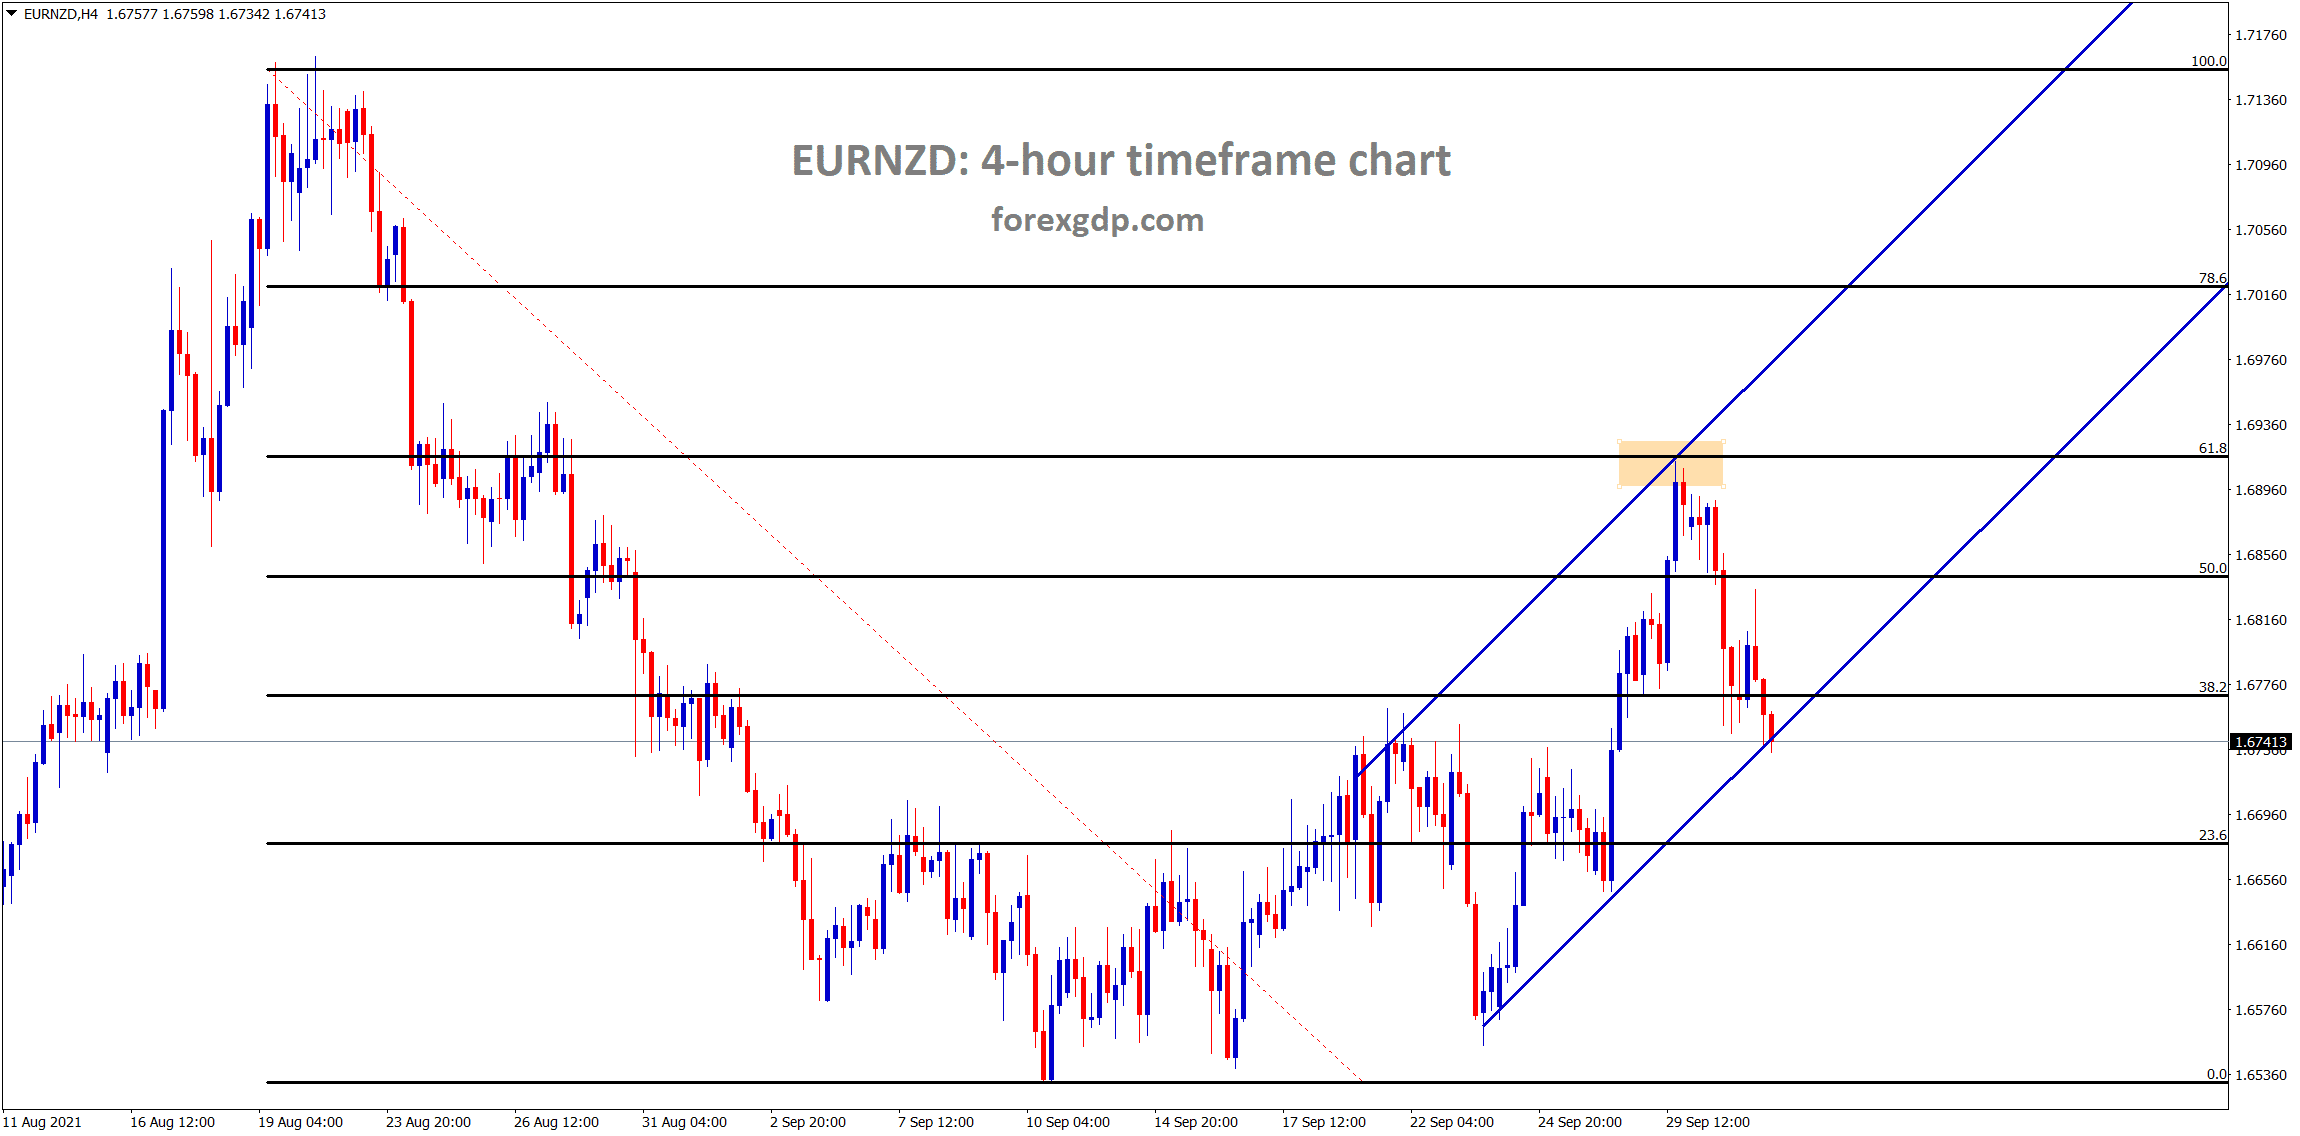 EURNZD is moving in a minor ascending channel after making a correction of 61 from the previous high.